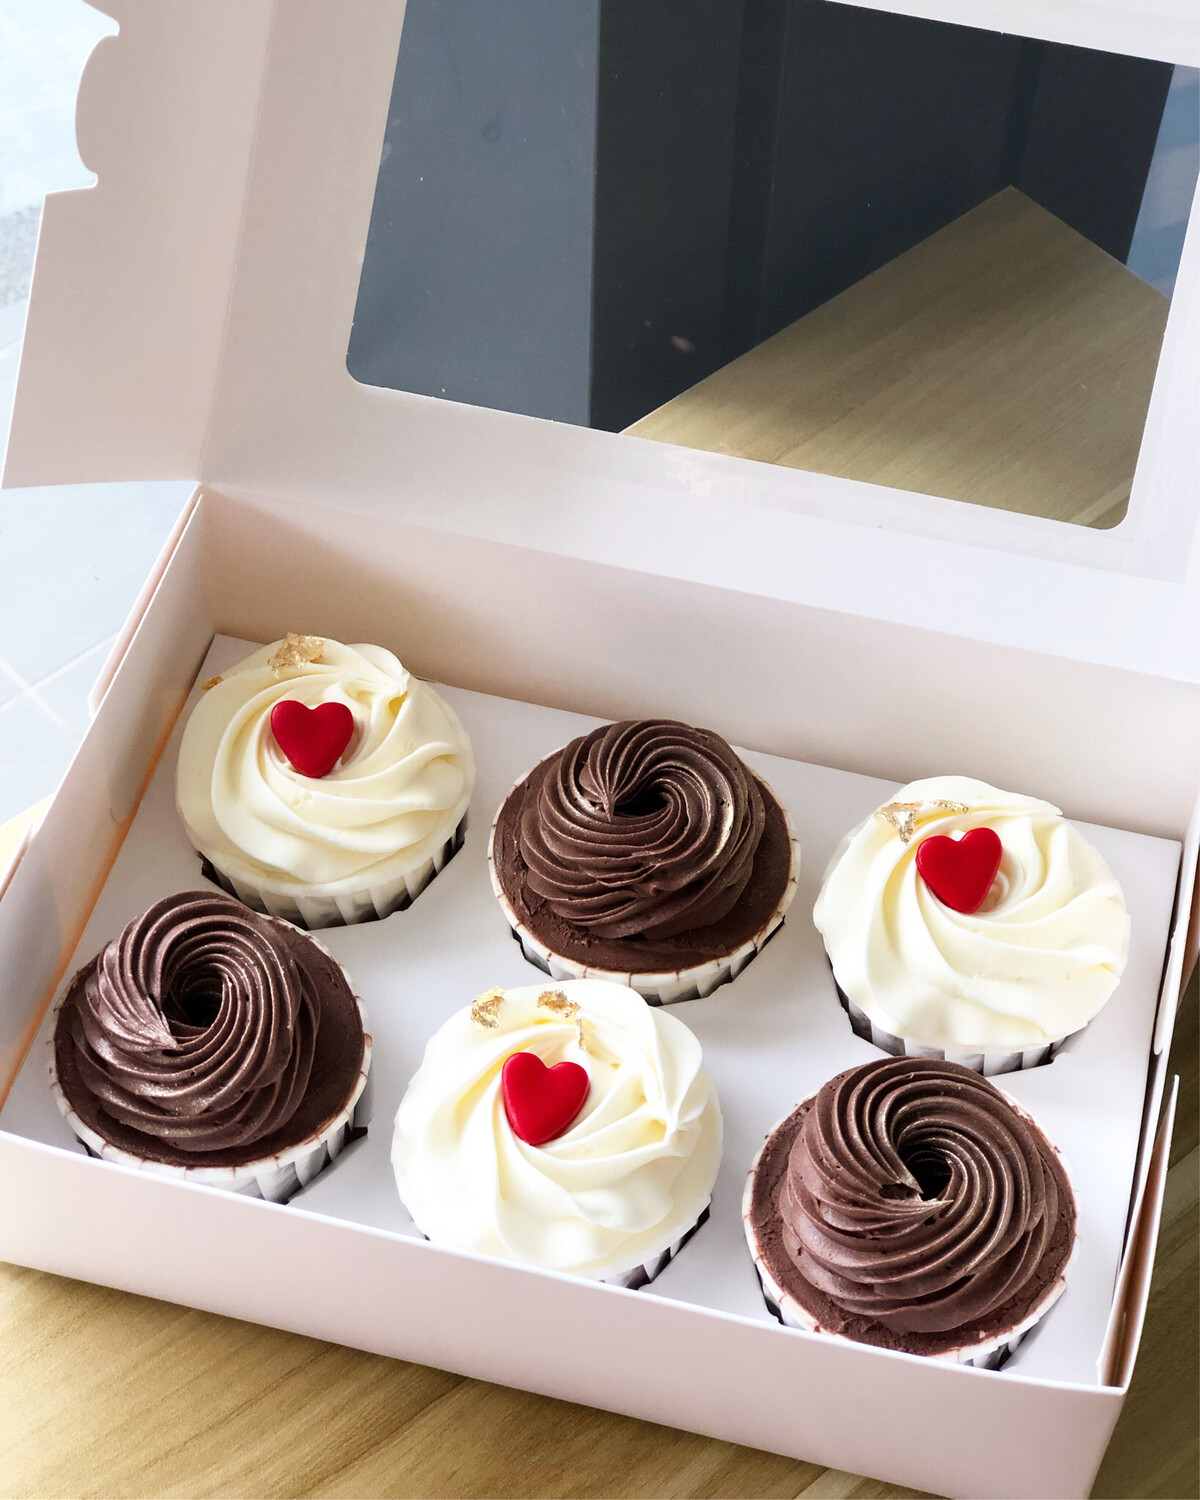 Couple Relationship Love Simplicity Cupcakes 2